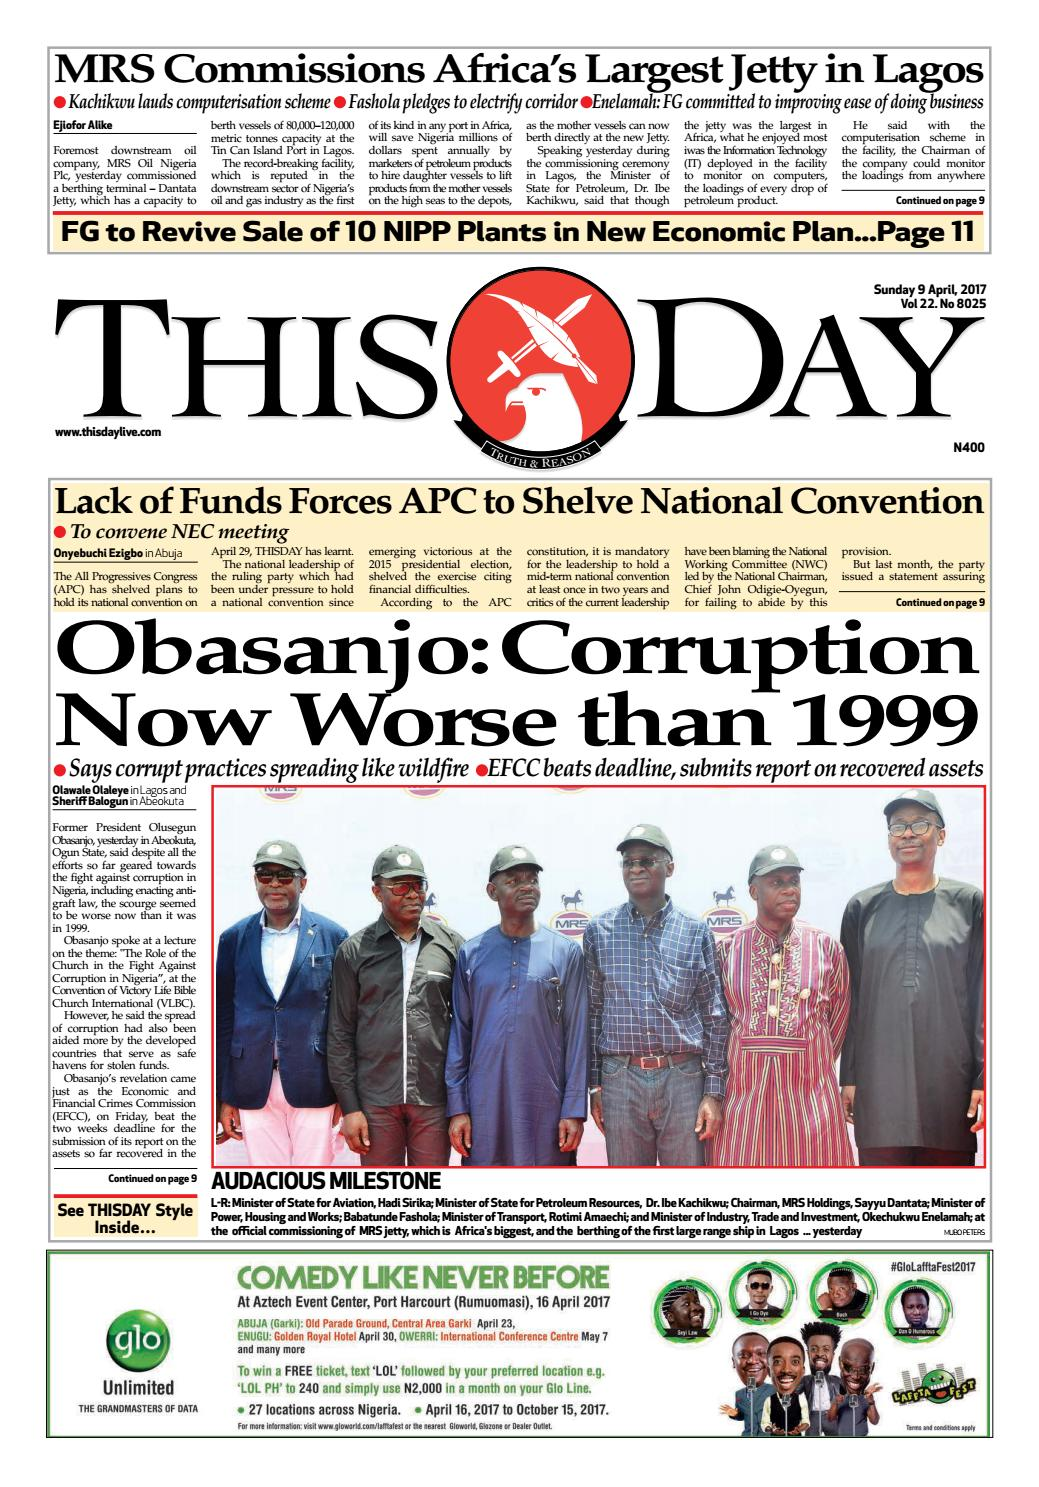 sunday 9th april 2017 by thisday newspapers ltd - issuu